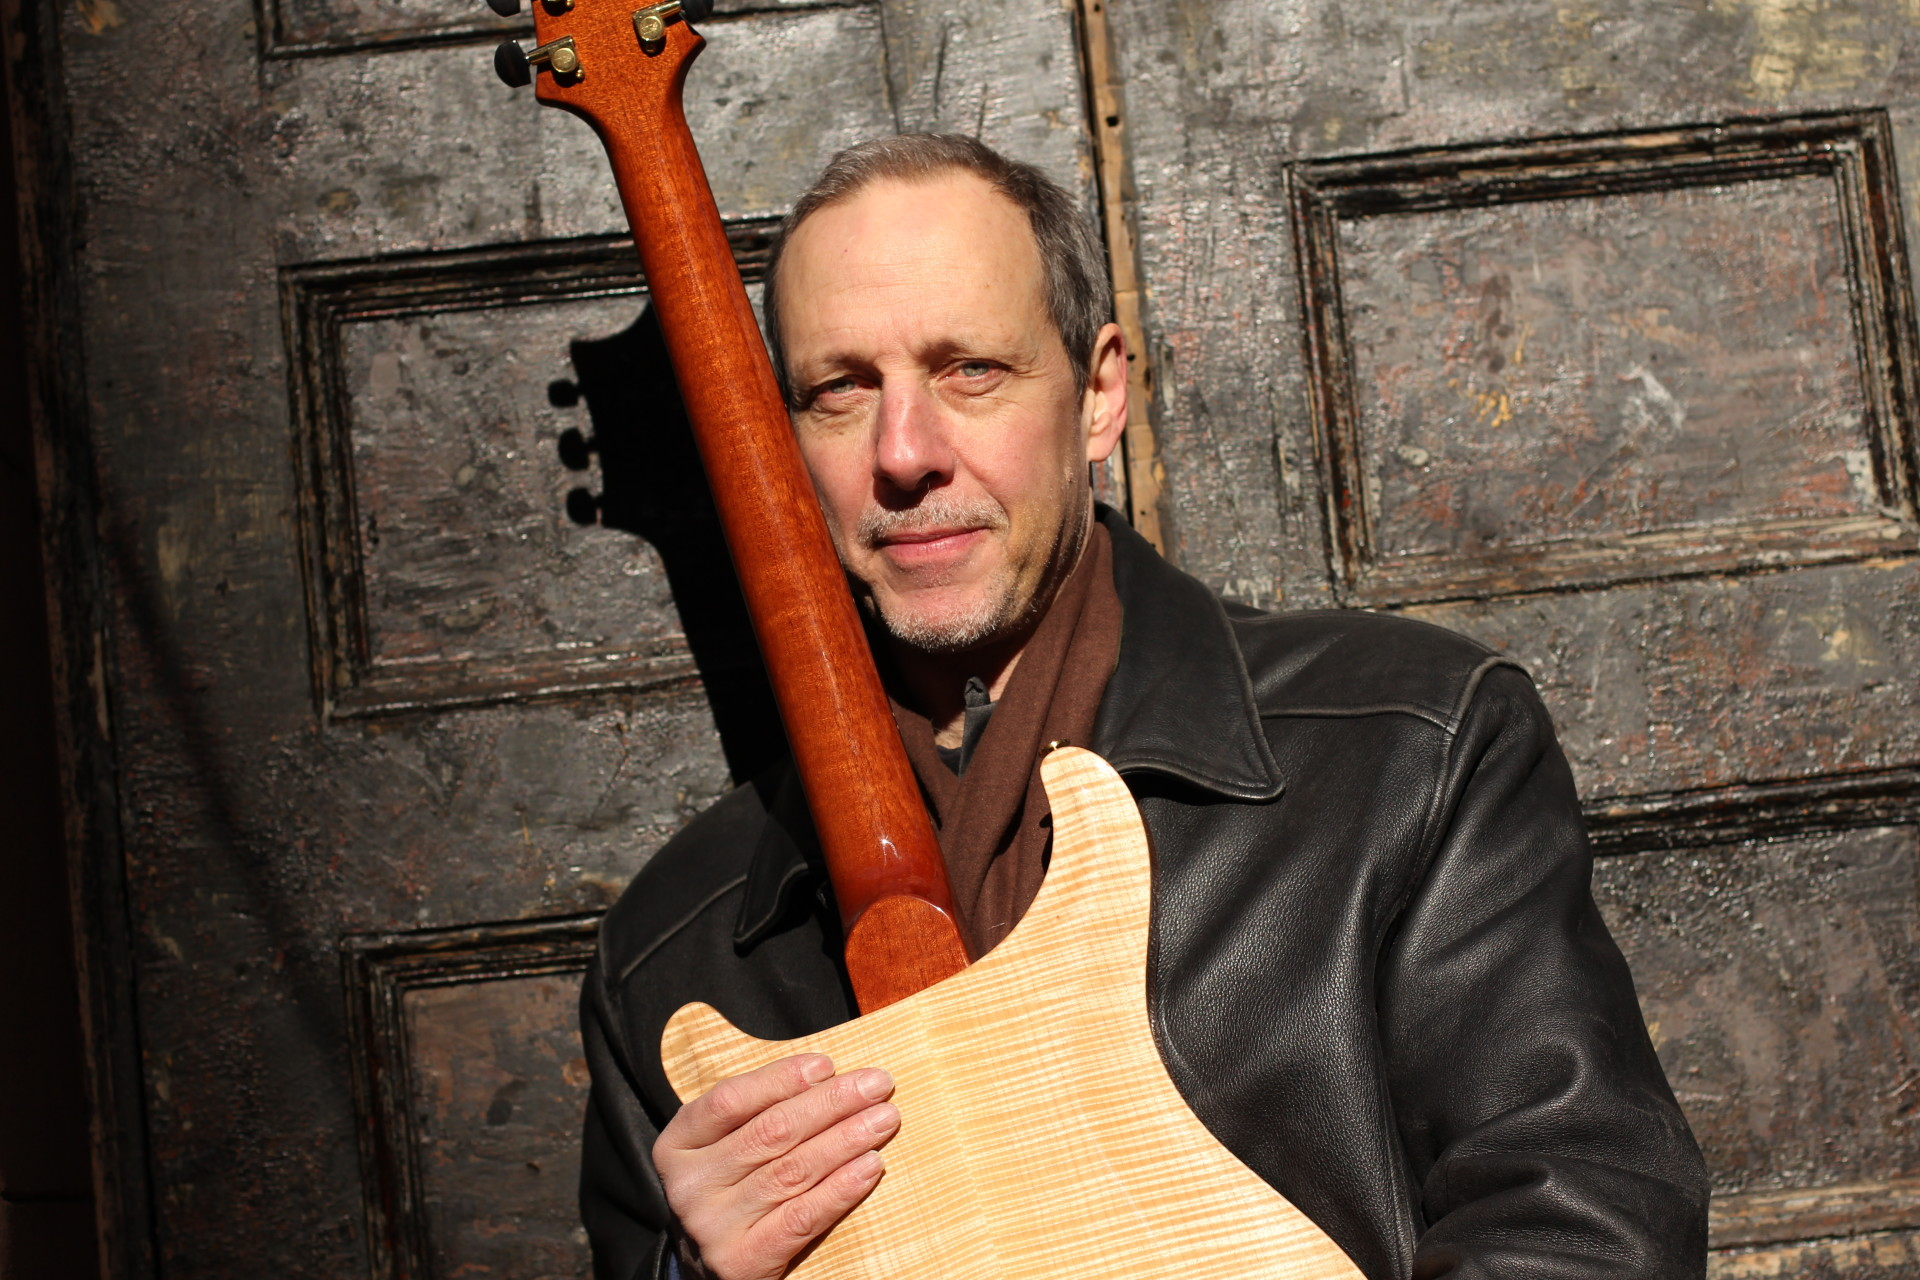 Mar 2: Joel Harrison Group continues Live @ Your Library